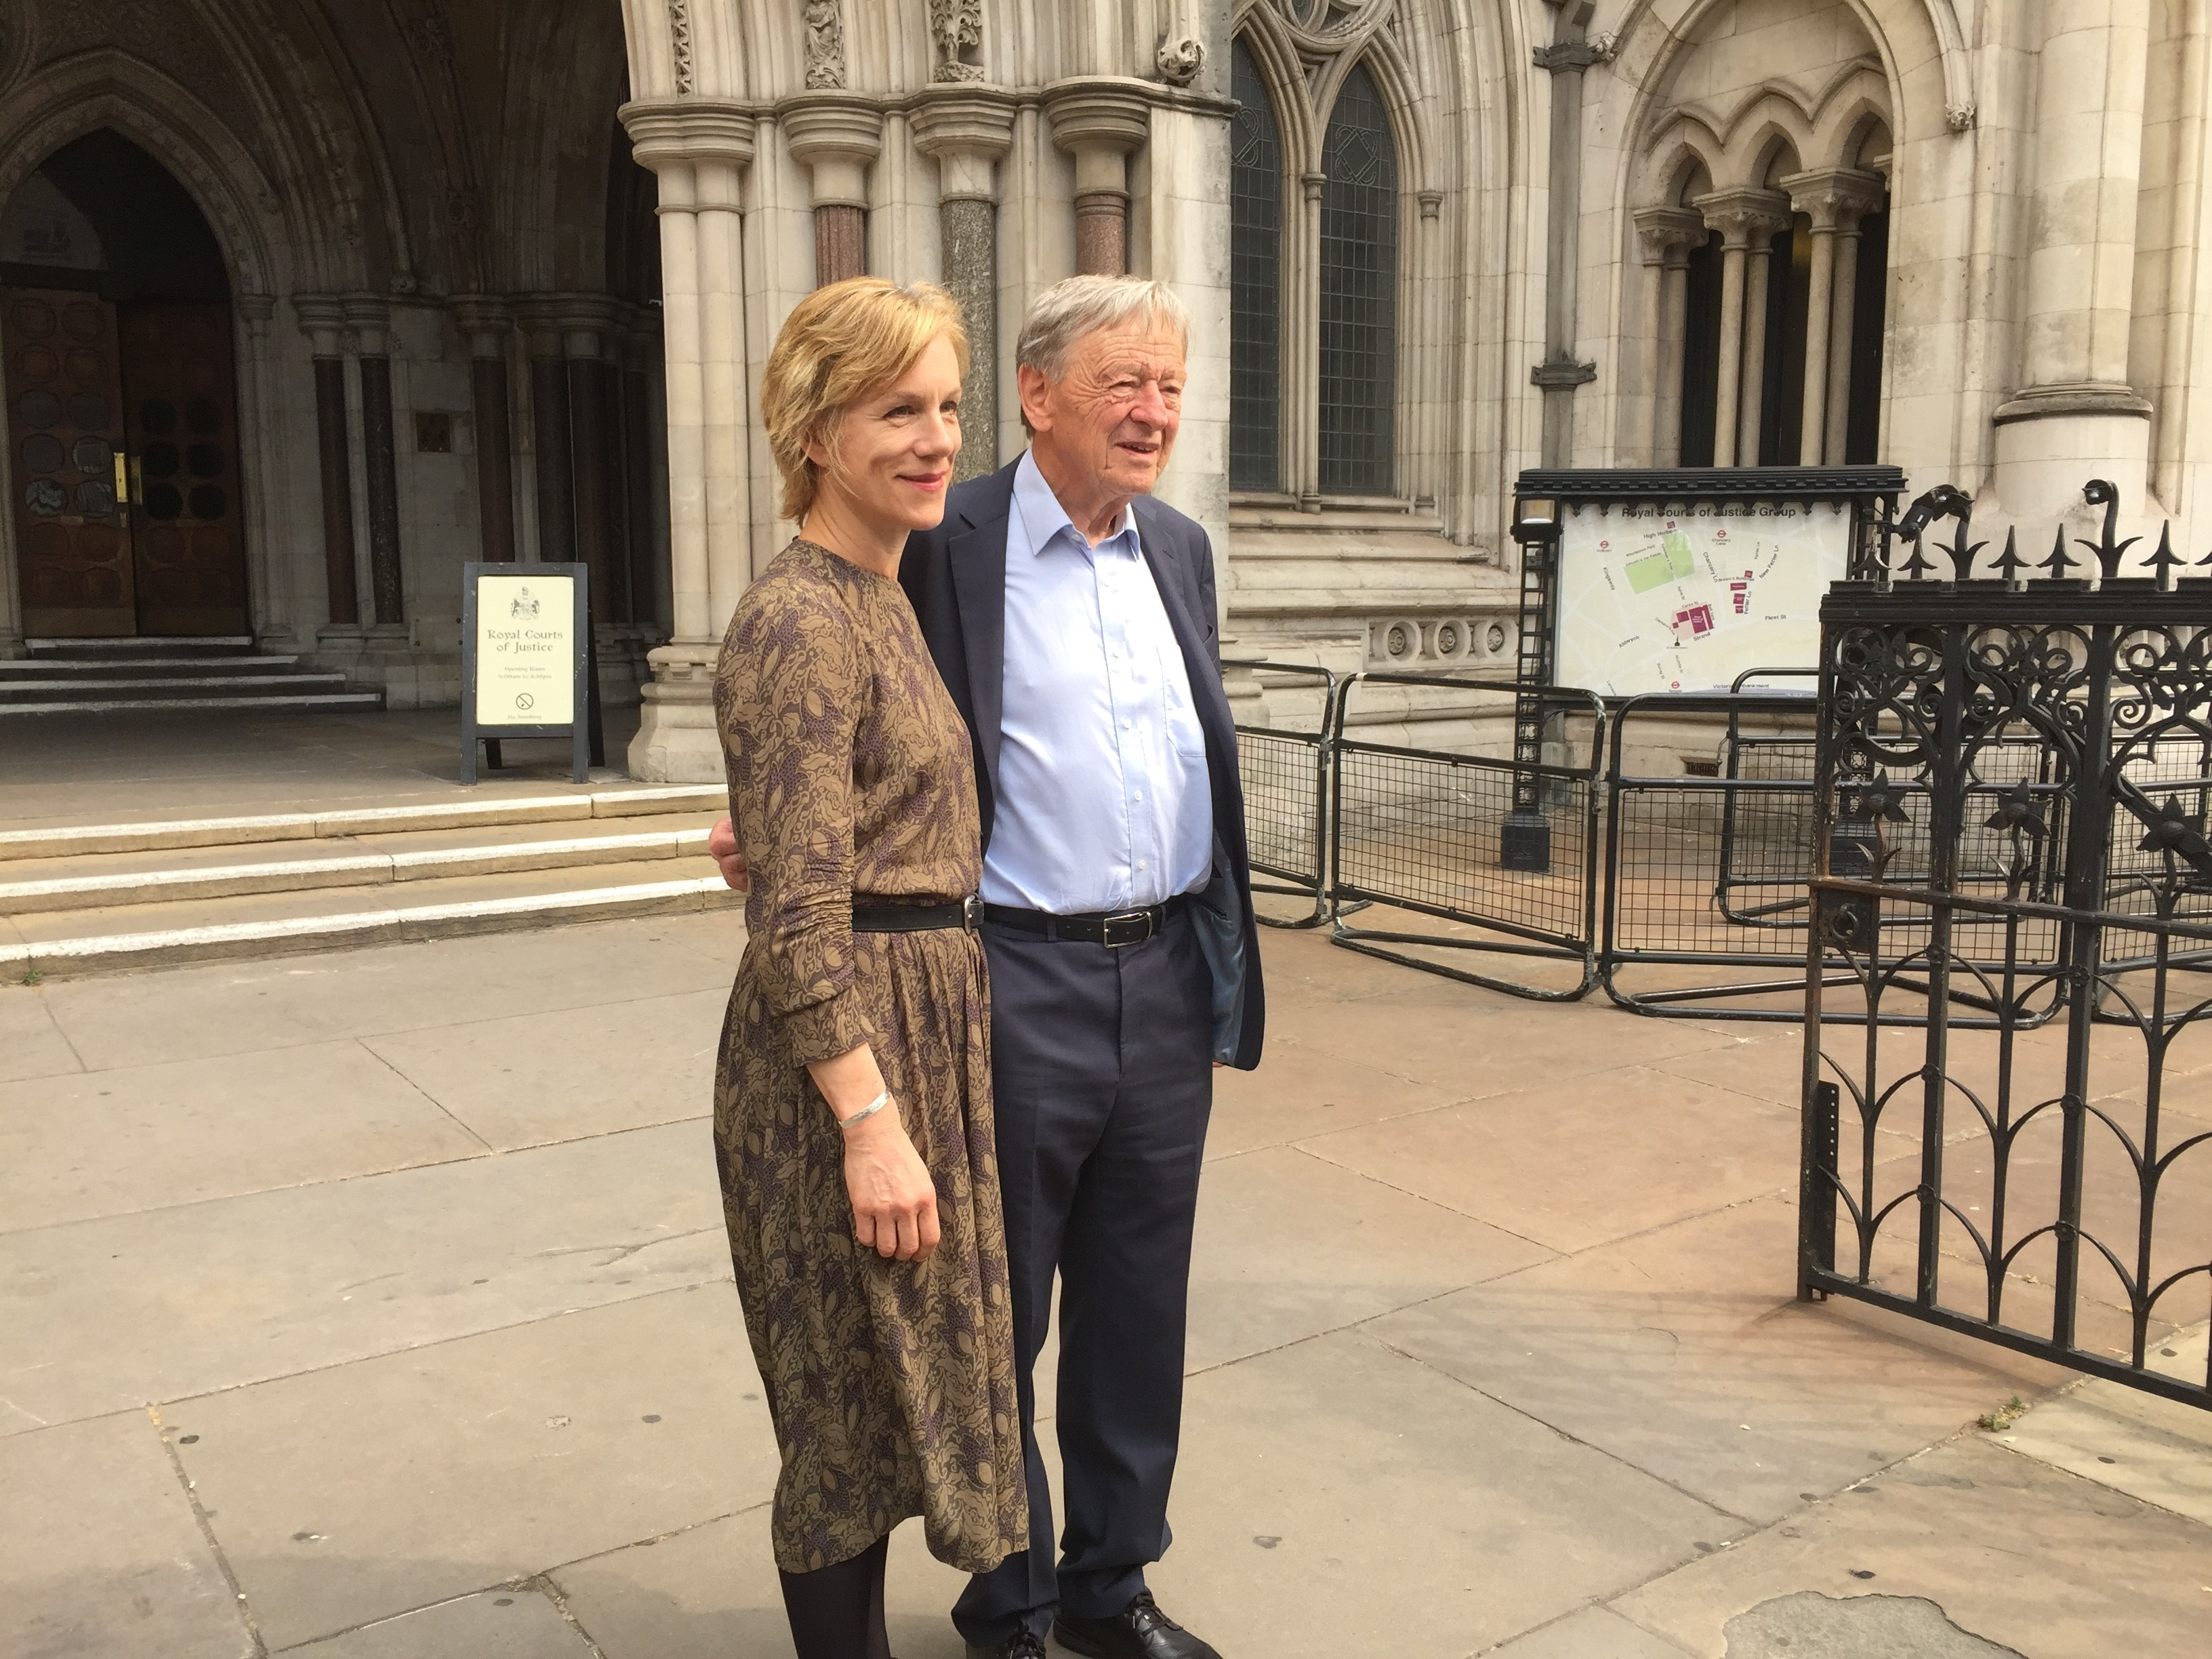 Lord Dubs and Juliet Stevenson who are campaigning for unaccompanied child refugees to enter the UK